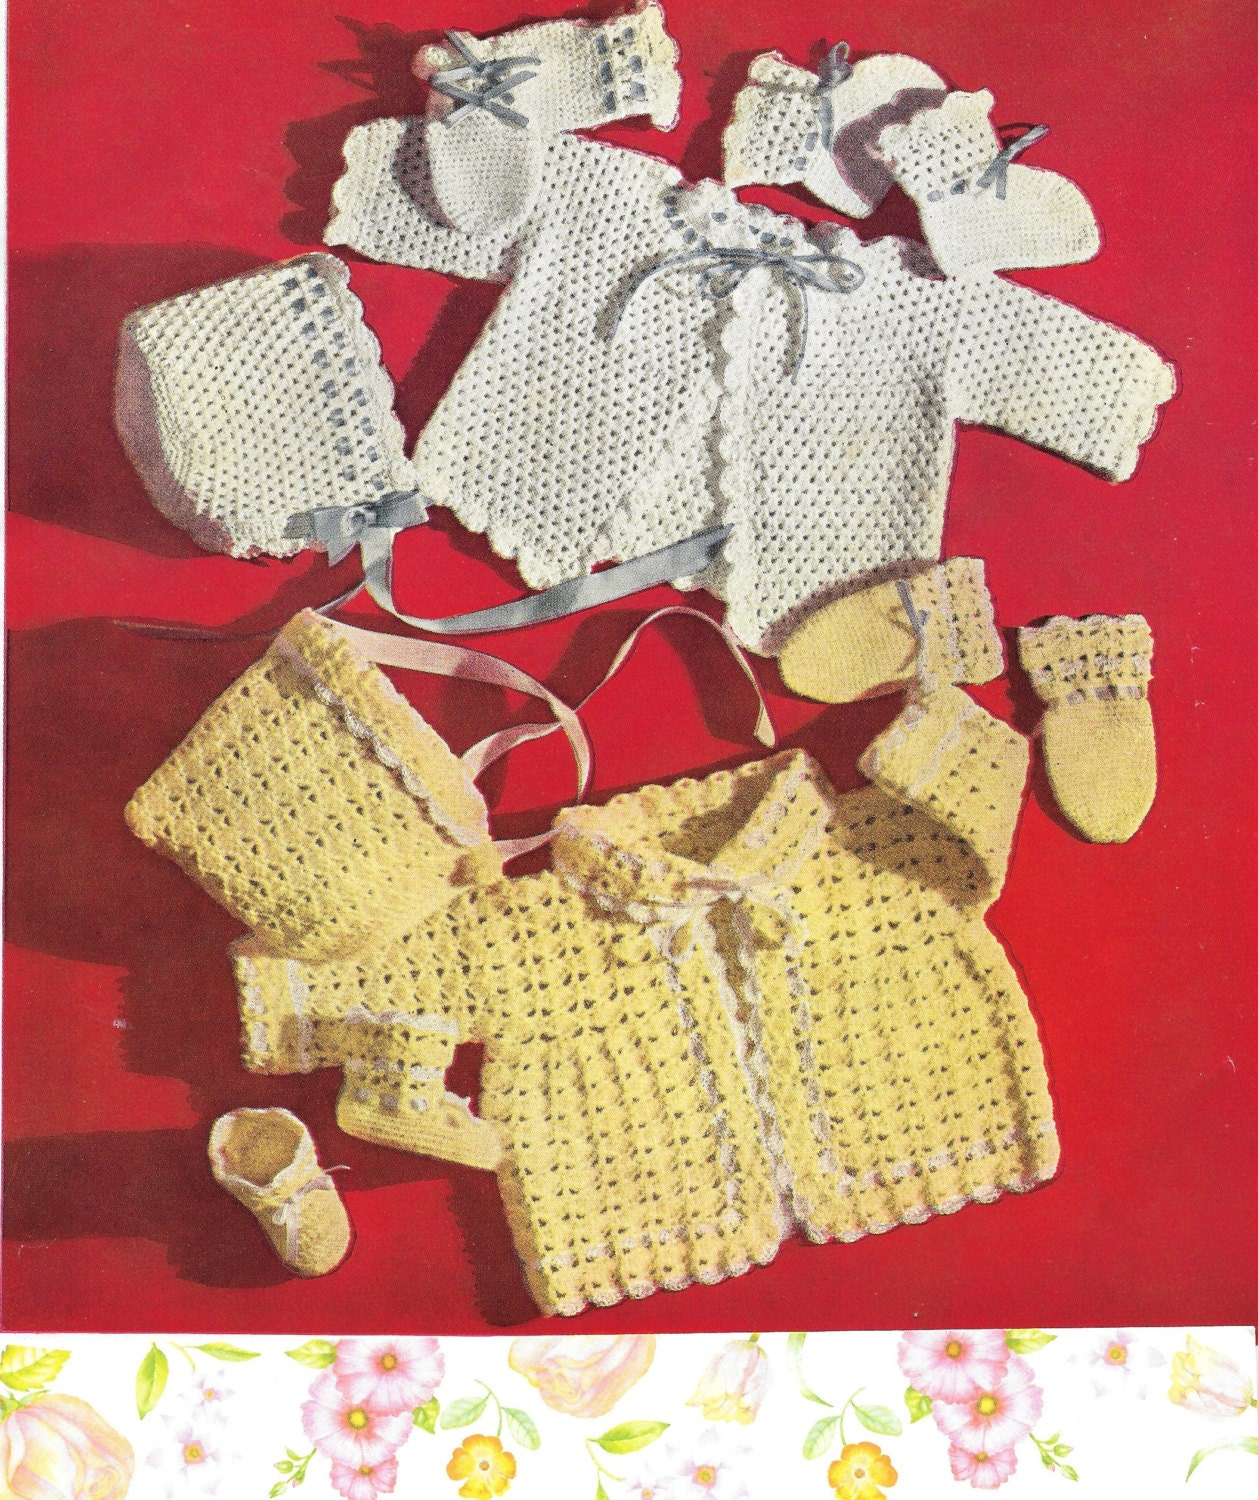 Crochet Baby Set Patterns Two Vintage Baby Set Patterns